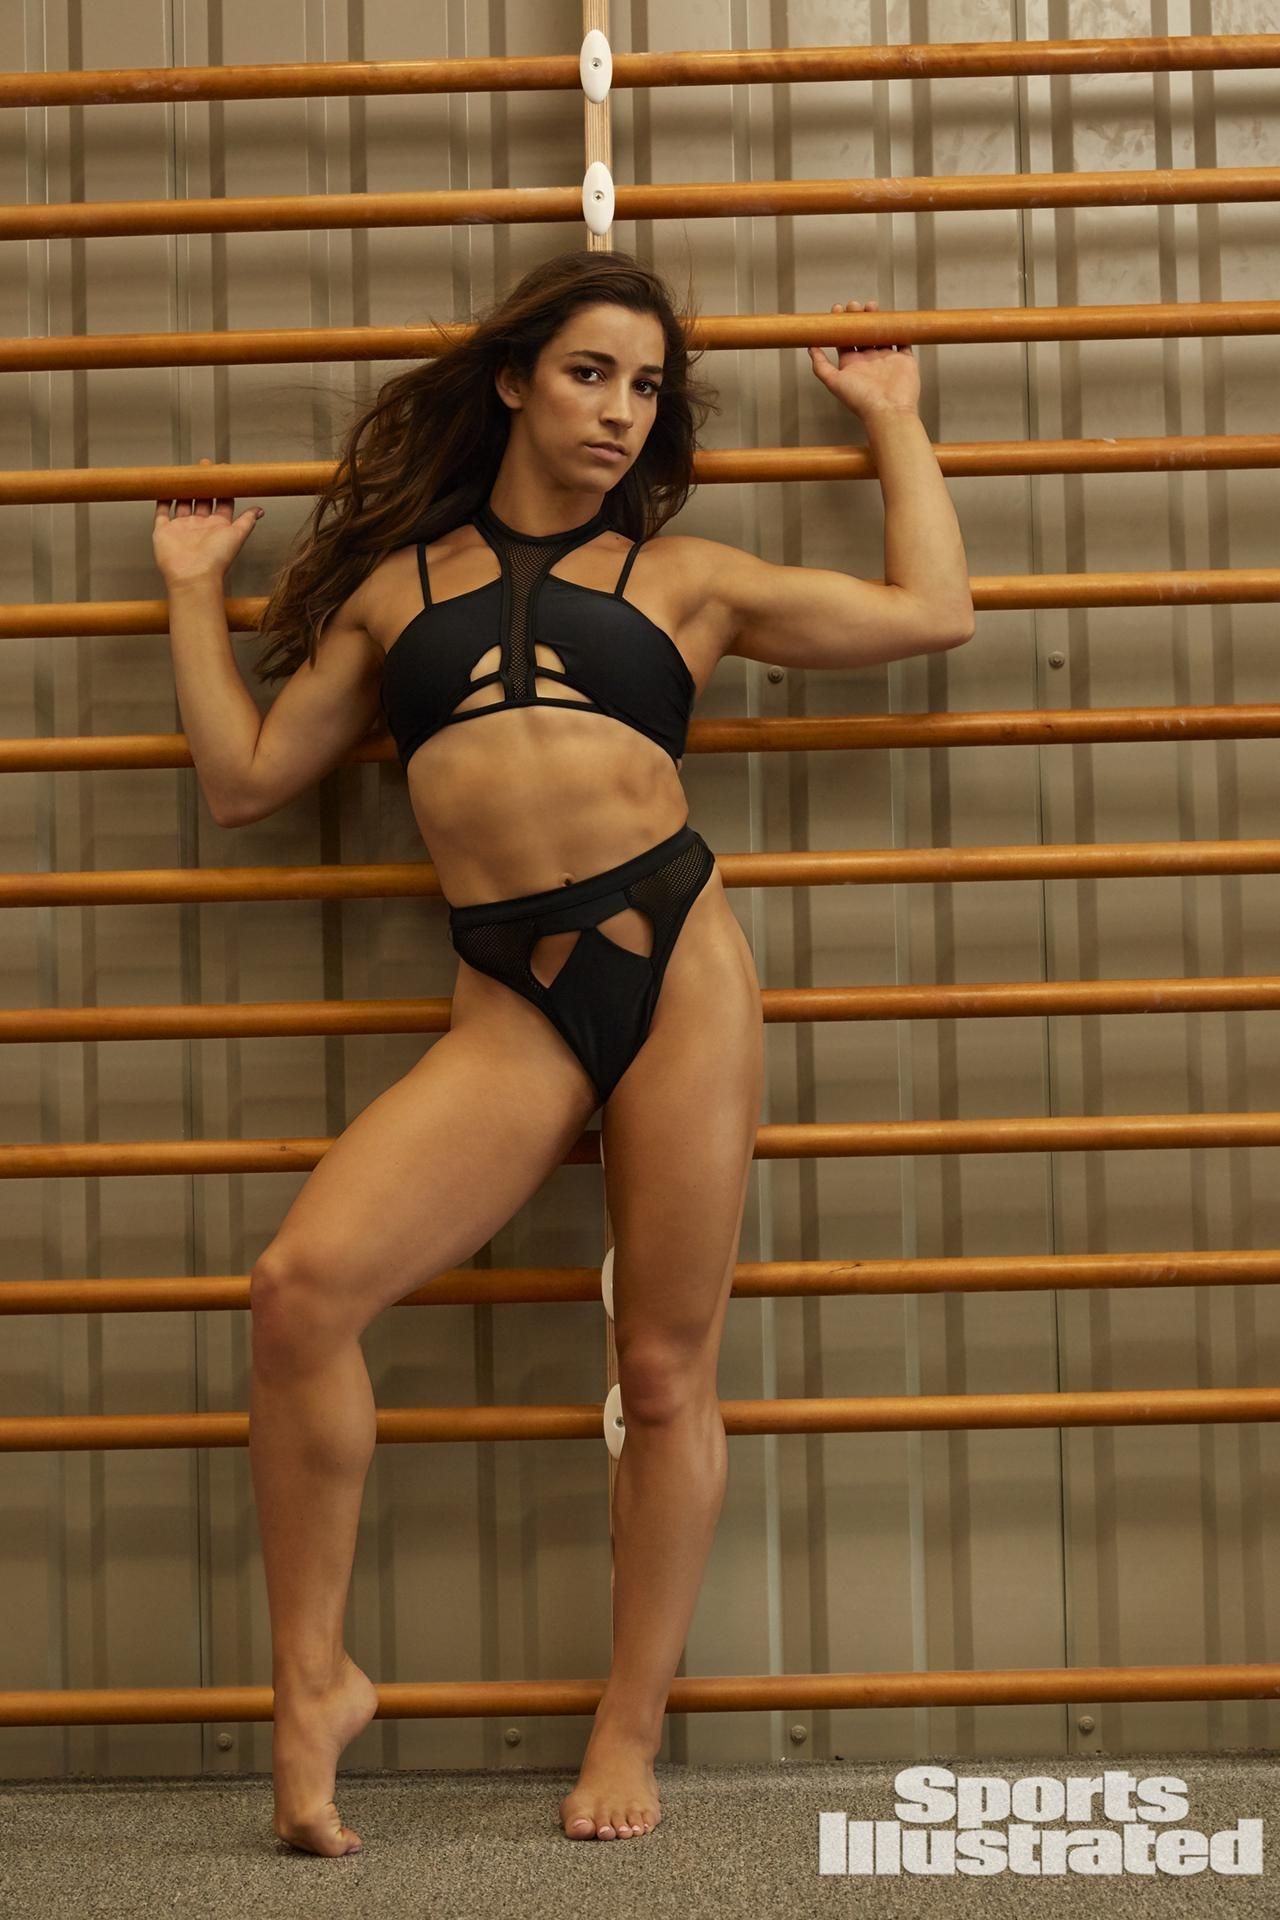 b904e70bbd1 Image result for aly raisman sports.illustrated